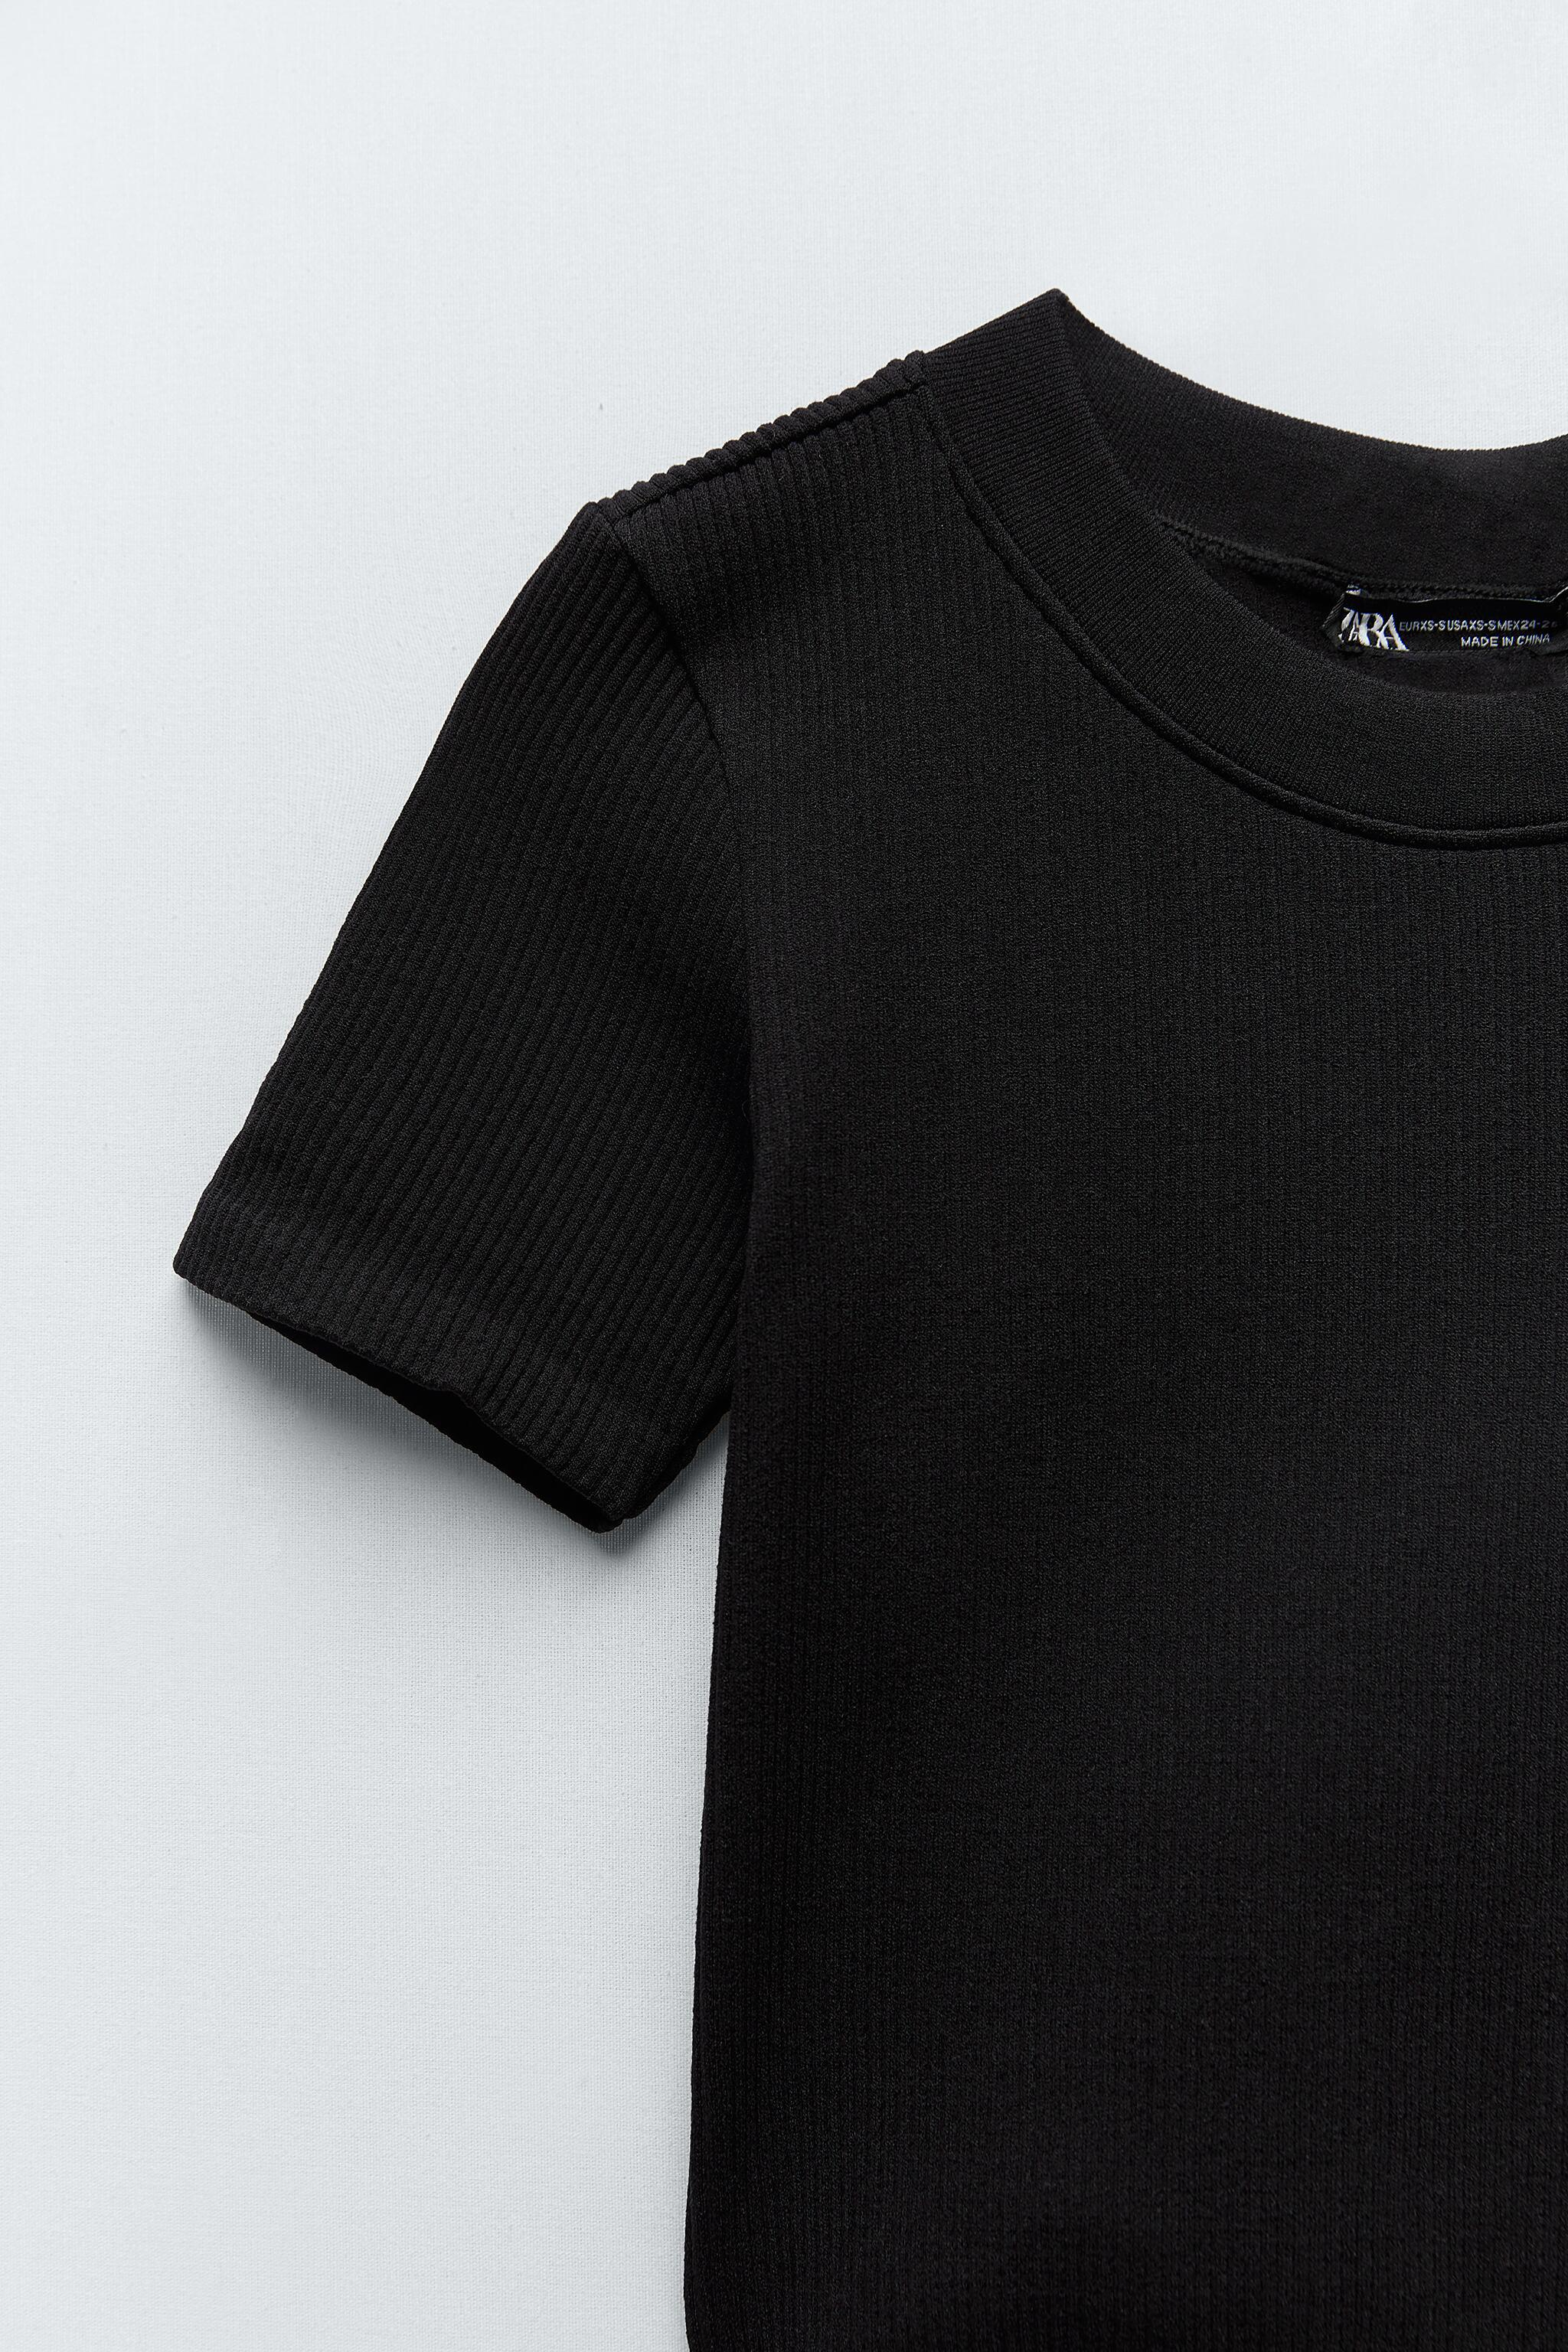 CROPPED TOP LIMITLESS CONTOUR COLLECTION 4